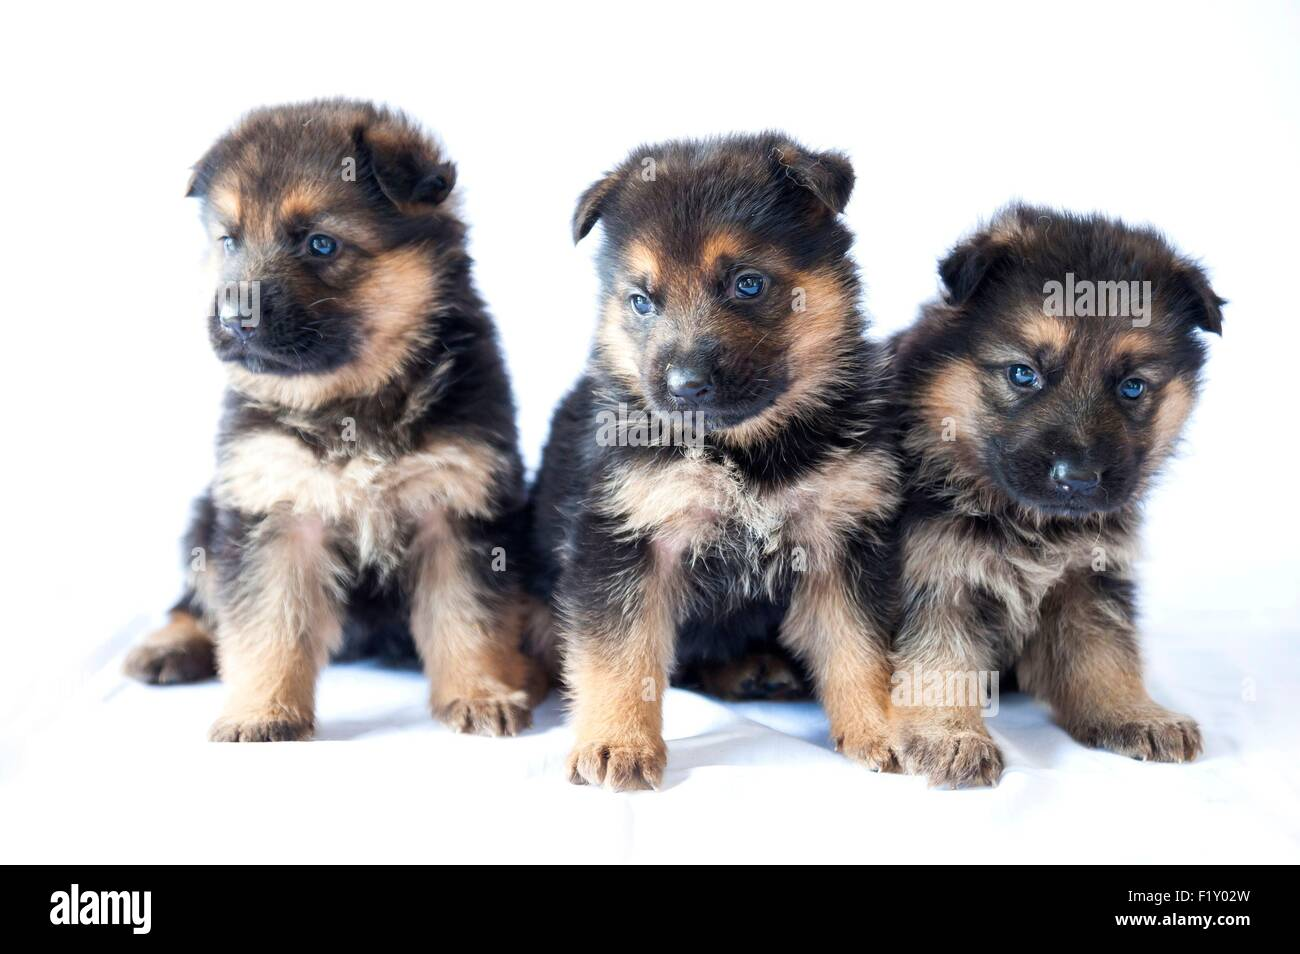 France, Ain, Dog (Canis lupus familiaris), German Shepherd puppies 1 month, Delacquis breeding - Stock Image